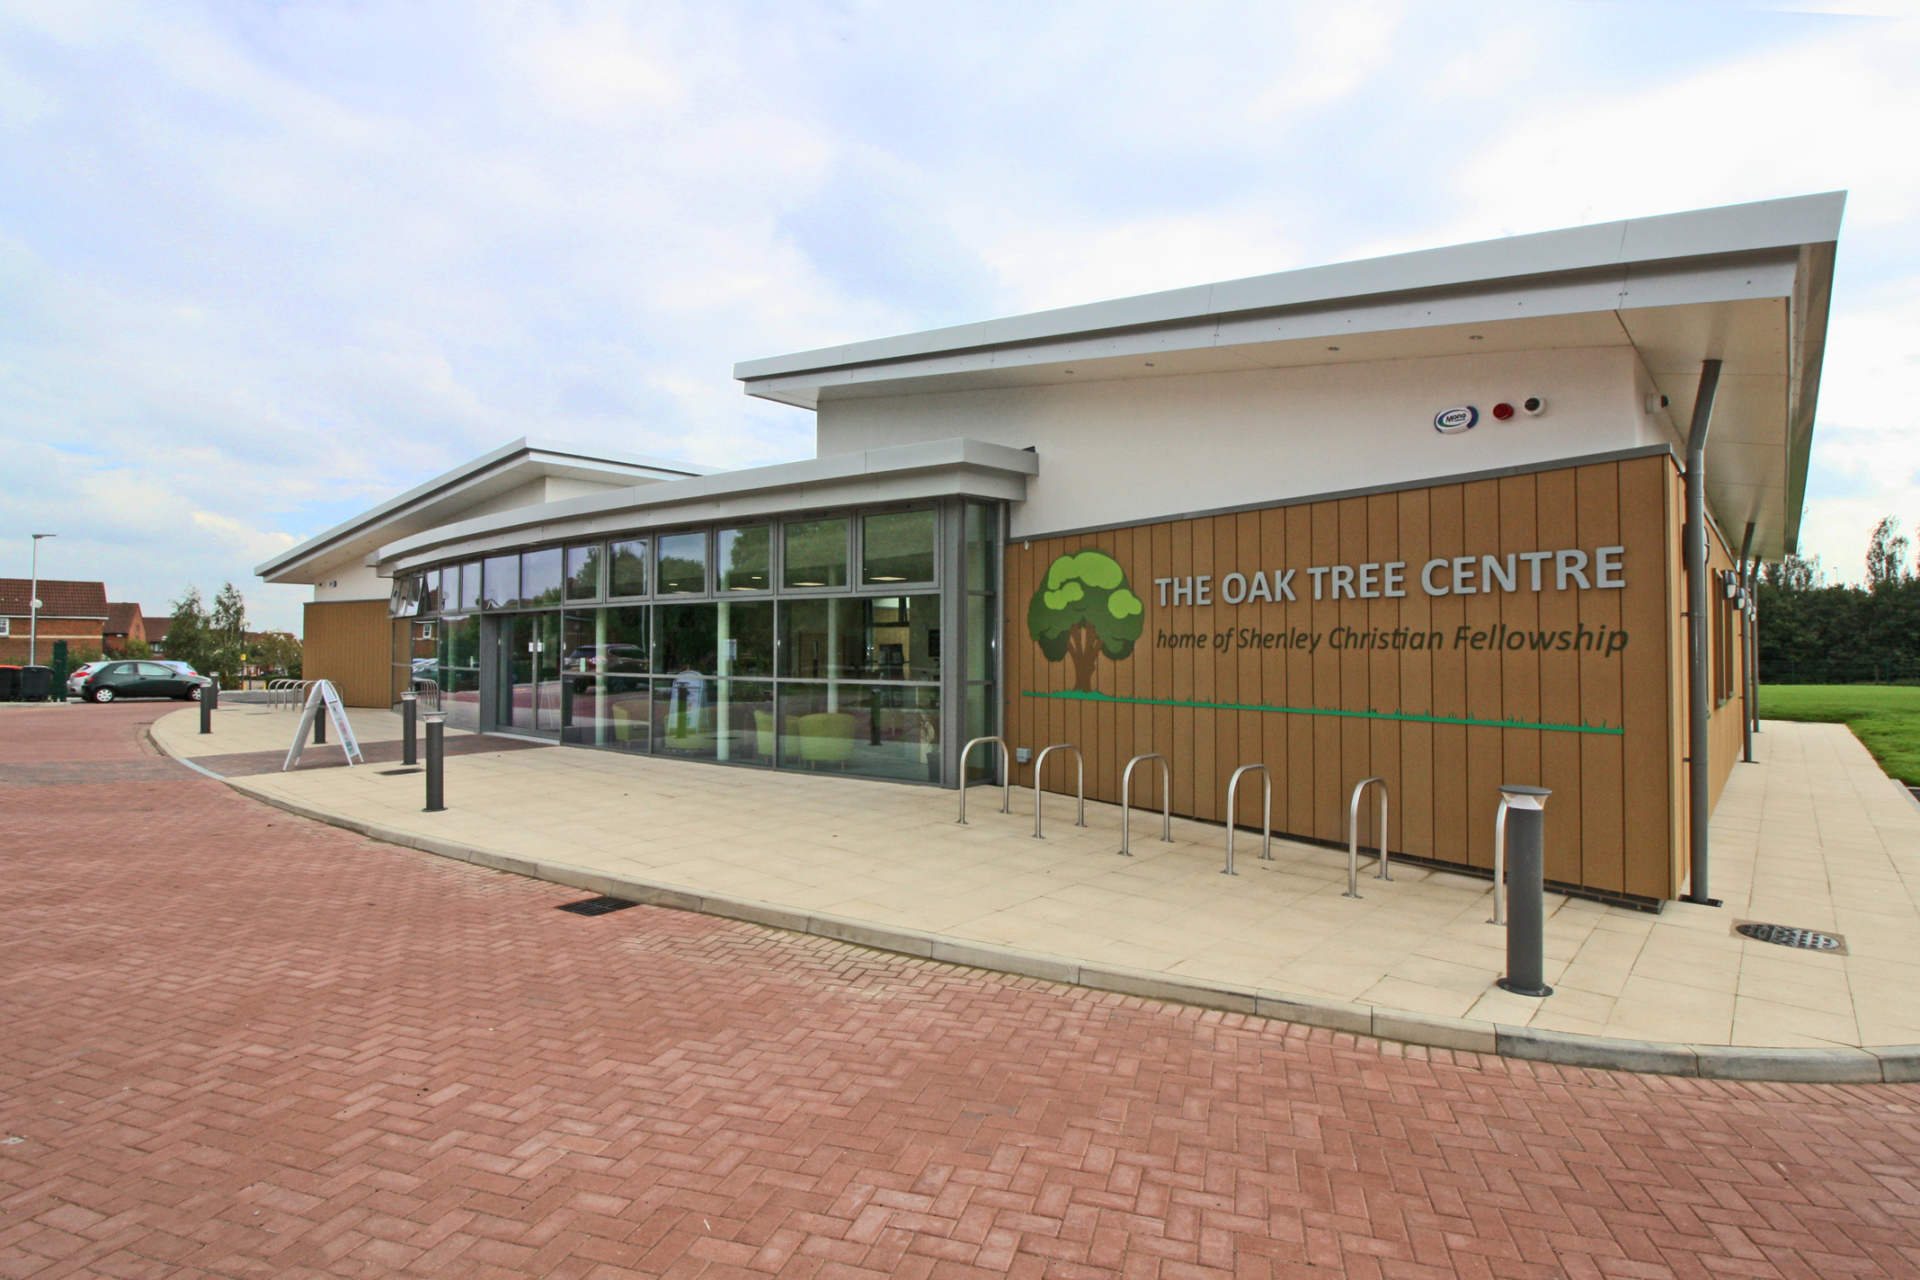 The Oak Tree Centre